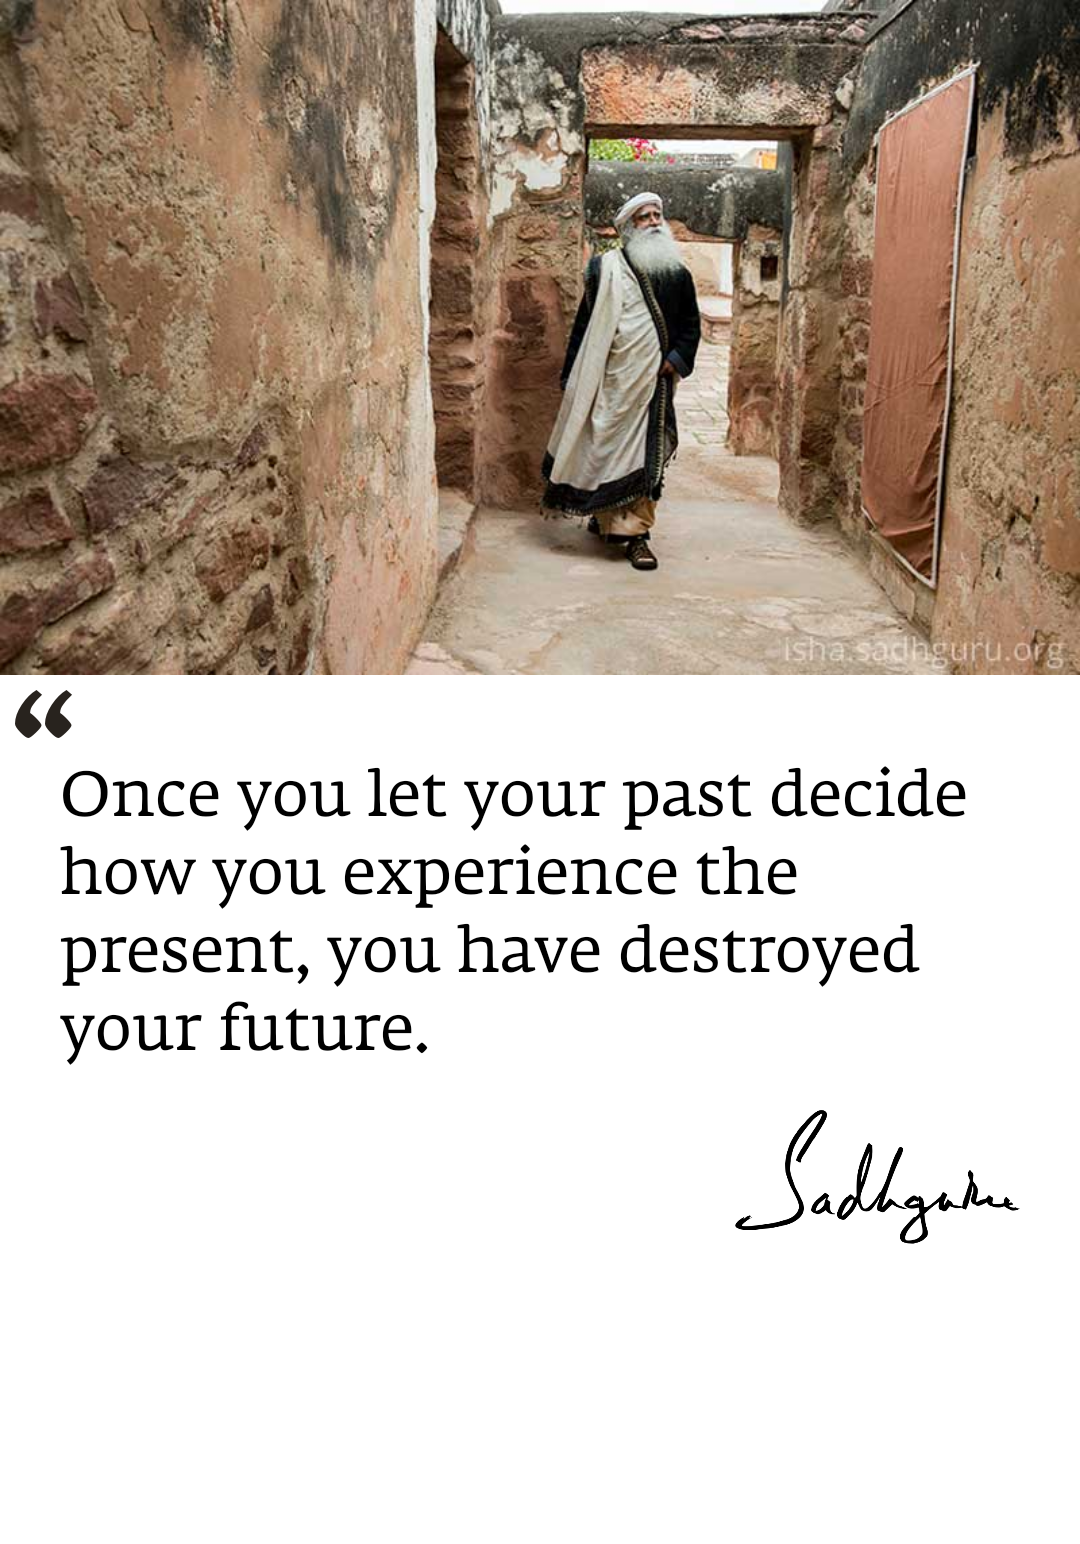 Don't let your past determine your future